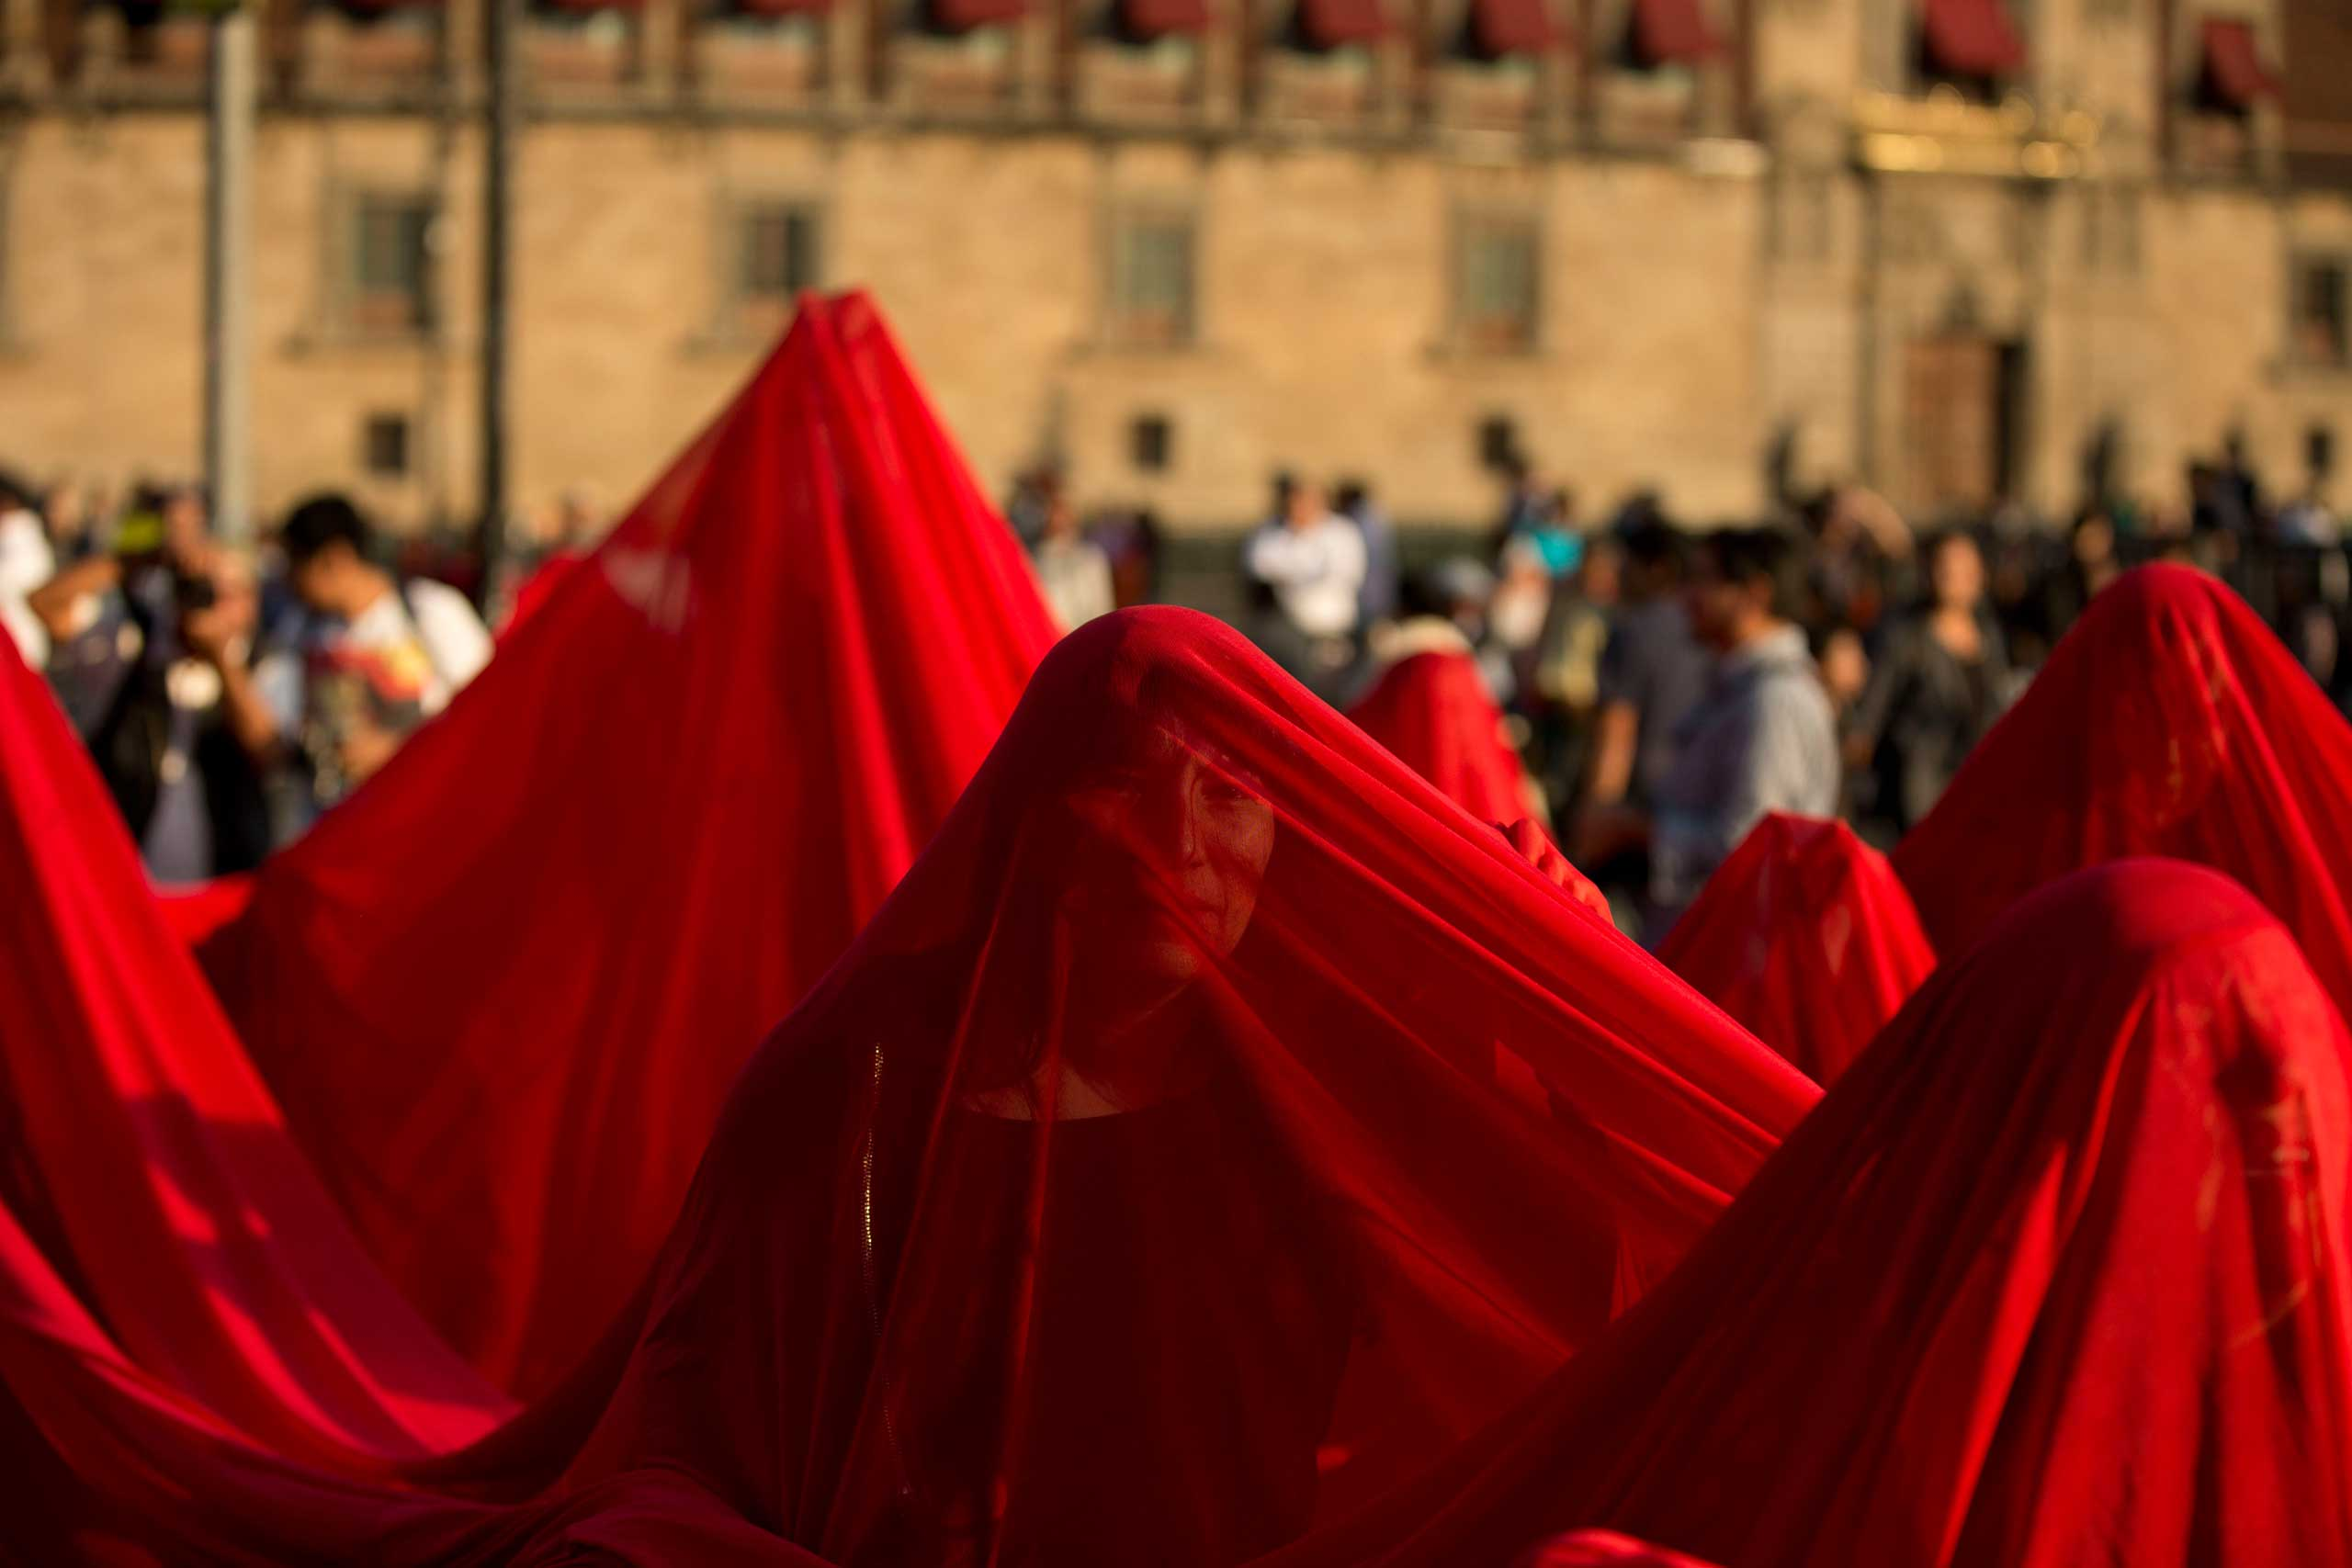 Dec. 1, 2014. Protestors draped in a giant red cloth to represent blood march during a demonstration in Mexico City, marking the second anniversary of President Enrique Pena Nieto's administration and demanding the government to find 43 students who disappeared at the hands of police.